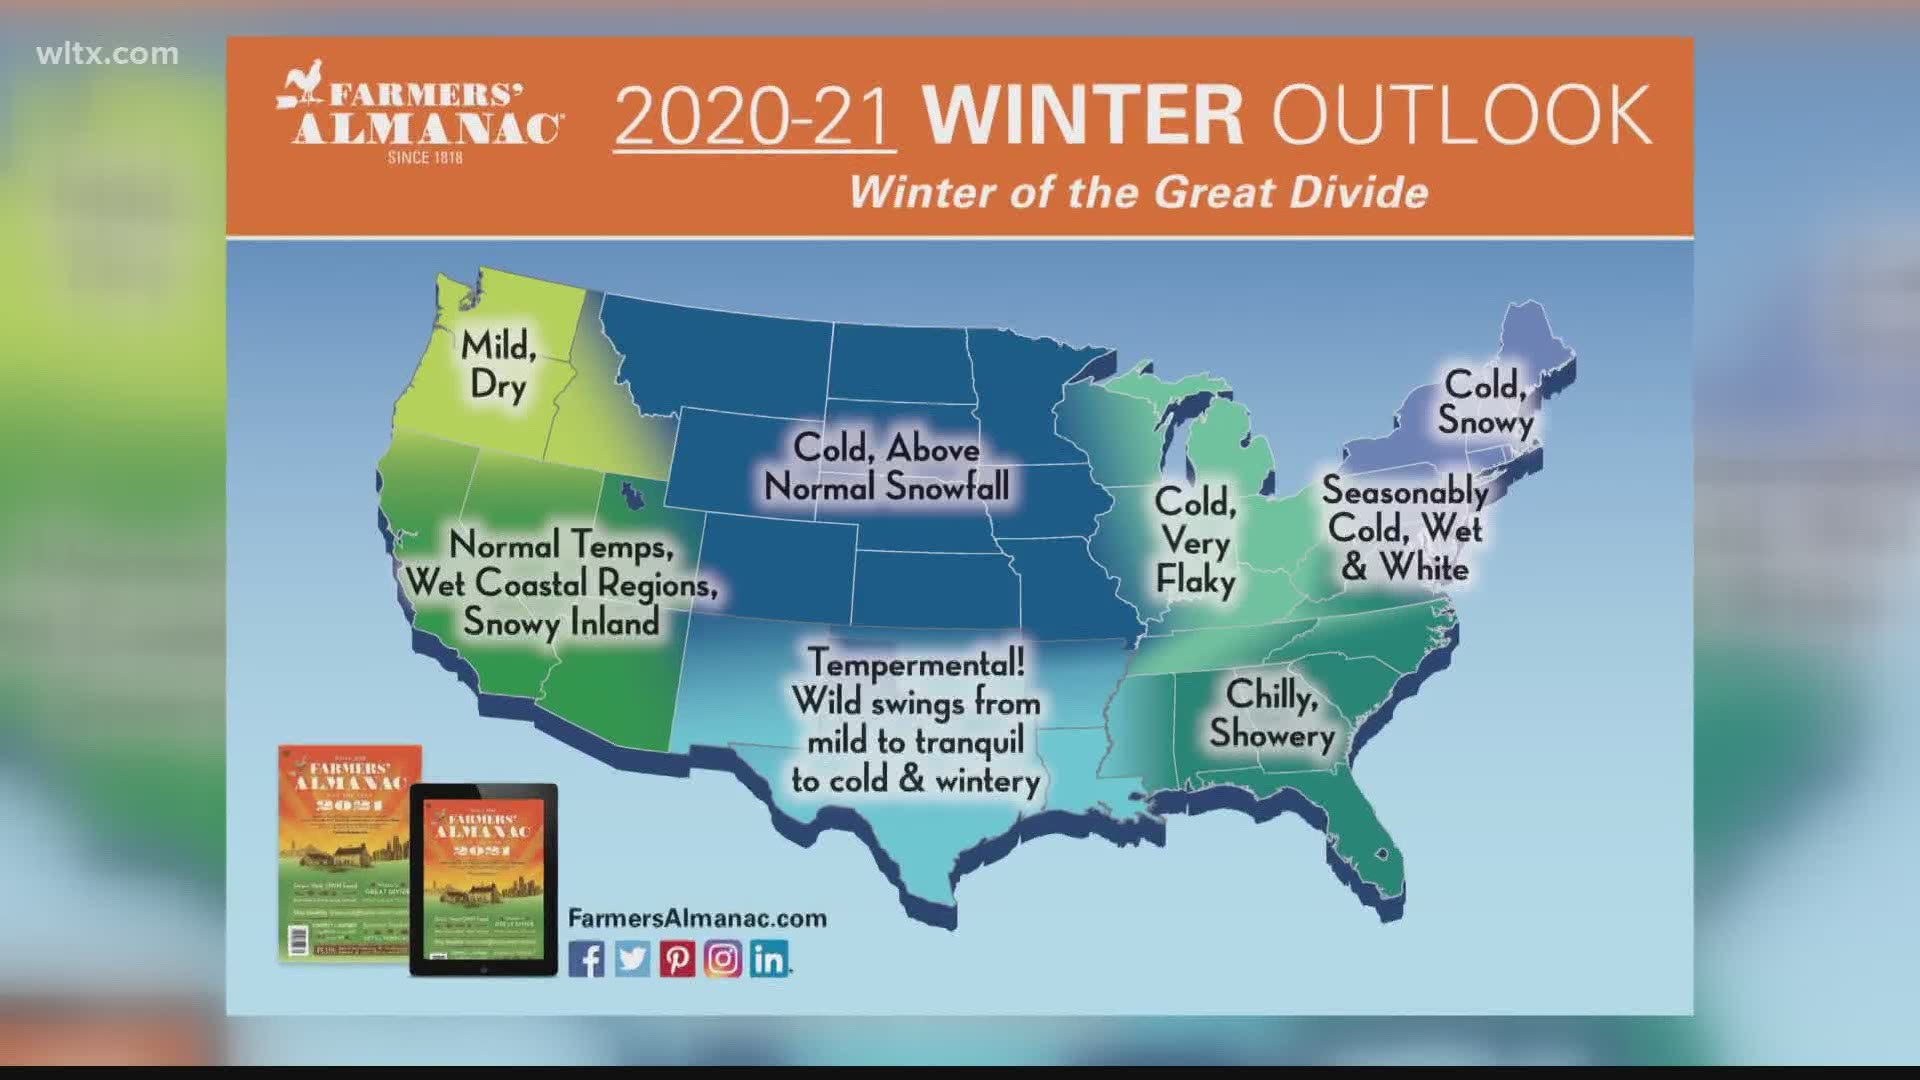 Farmers Almanac Christmas Day 2020 Weather Farmers Almanac predicts 'Winter of Great Divide' for America